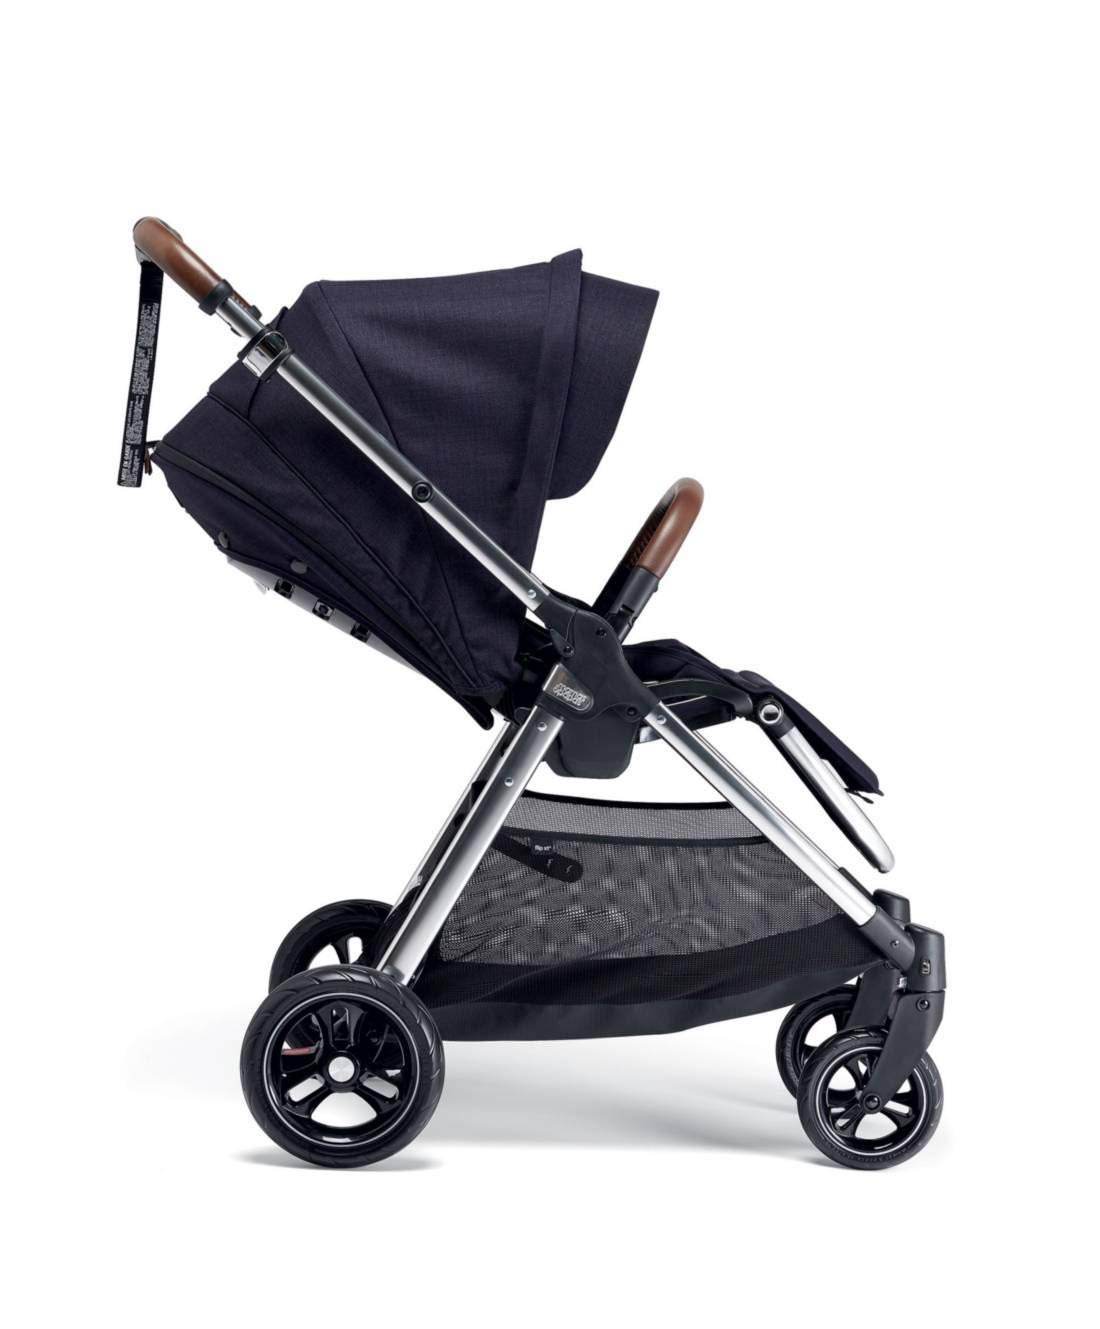 Mamas & Papas Flip XT3 Pushchair - Dark Navy Mamas & Papas PUSHCHAIR - Our lightweight Flip XT3 pushchair is perfect for handling busy streets FOLDABLE - This pushchair can be stored away quick and compact with the easy one handed fold FEATURES - The lie-flat position supports natural, healthy sleep while the UPF 50+ large hood & air vent provides cooling protection from the sun 2